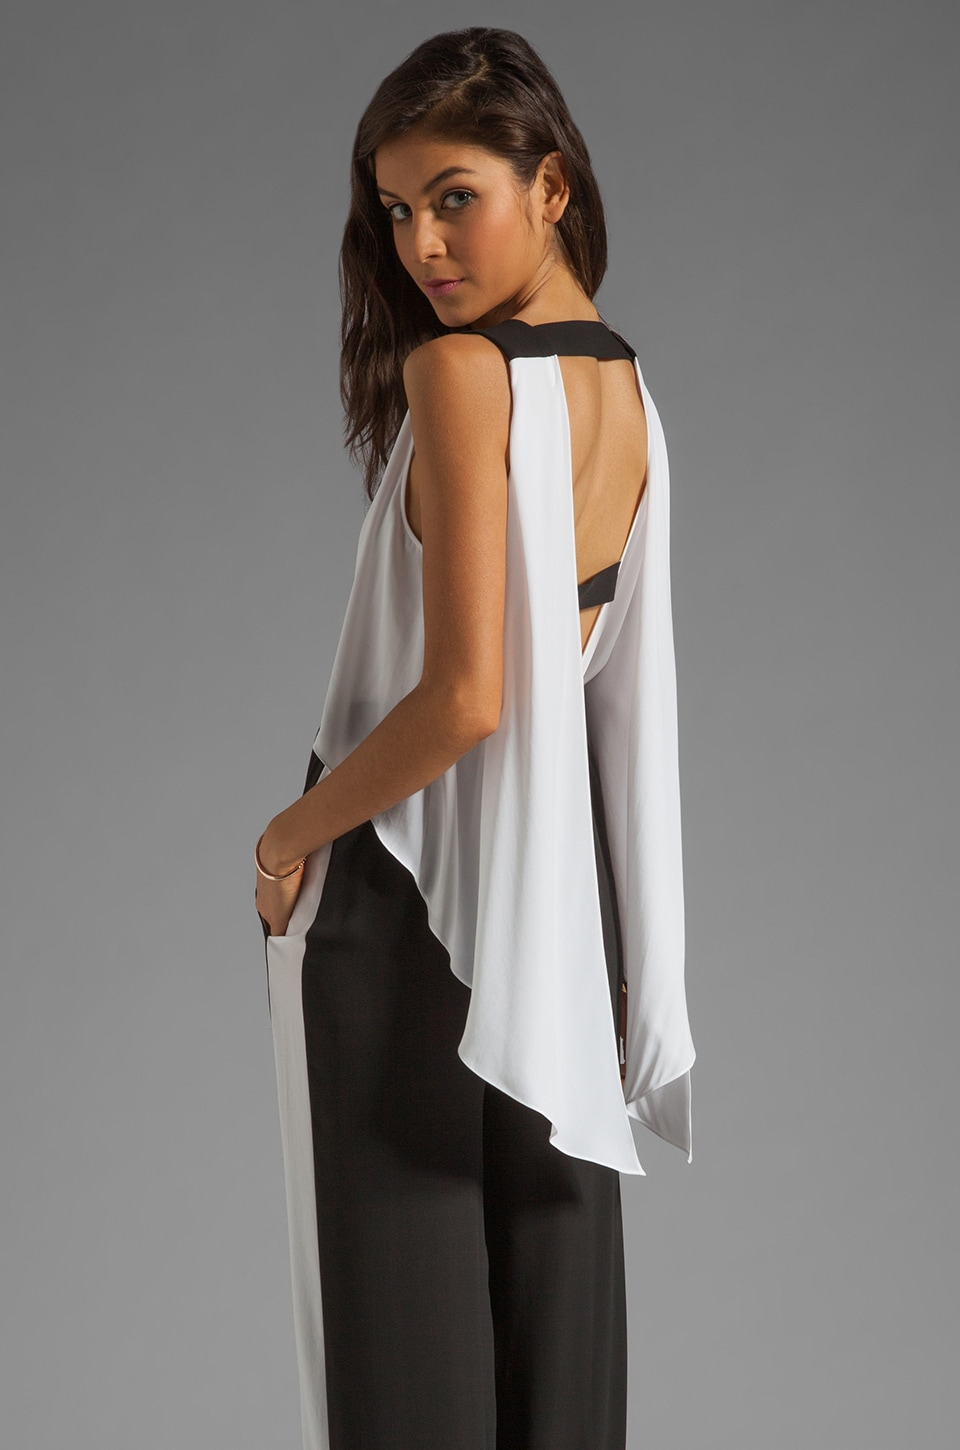 BCBGMAXAZRIA Long Jumper in Black Combo